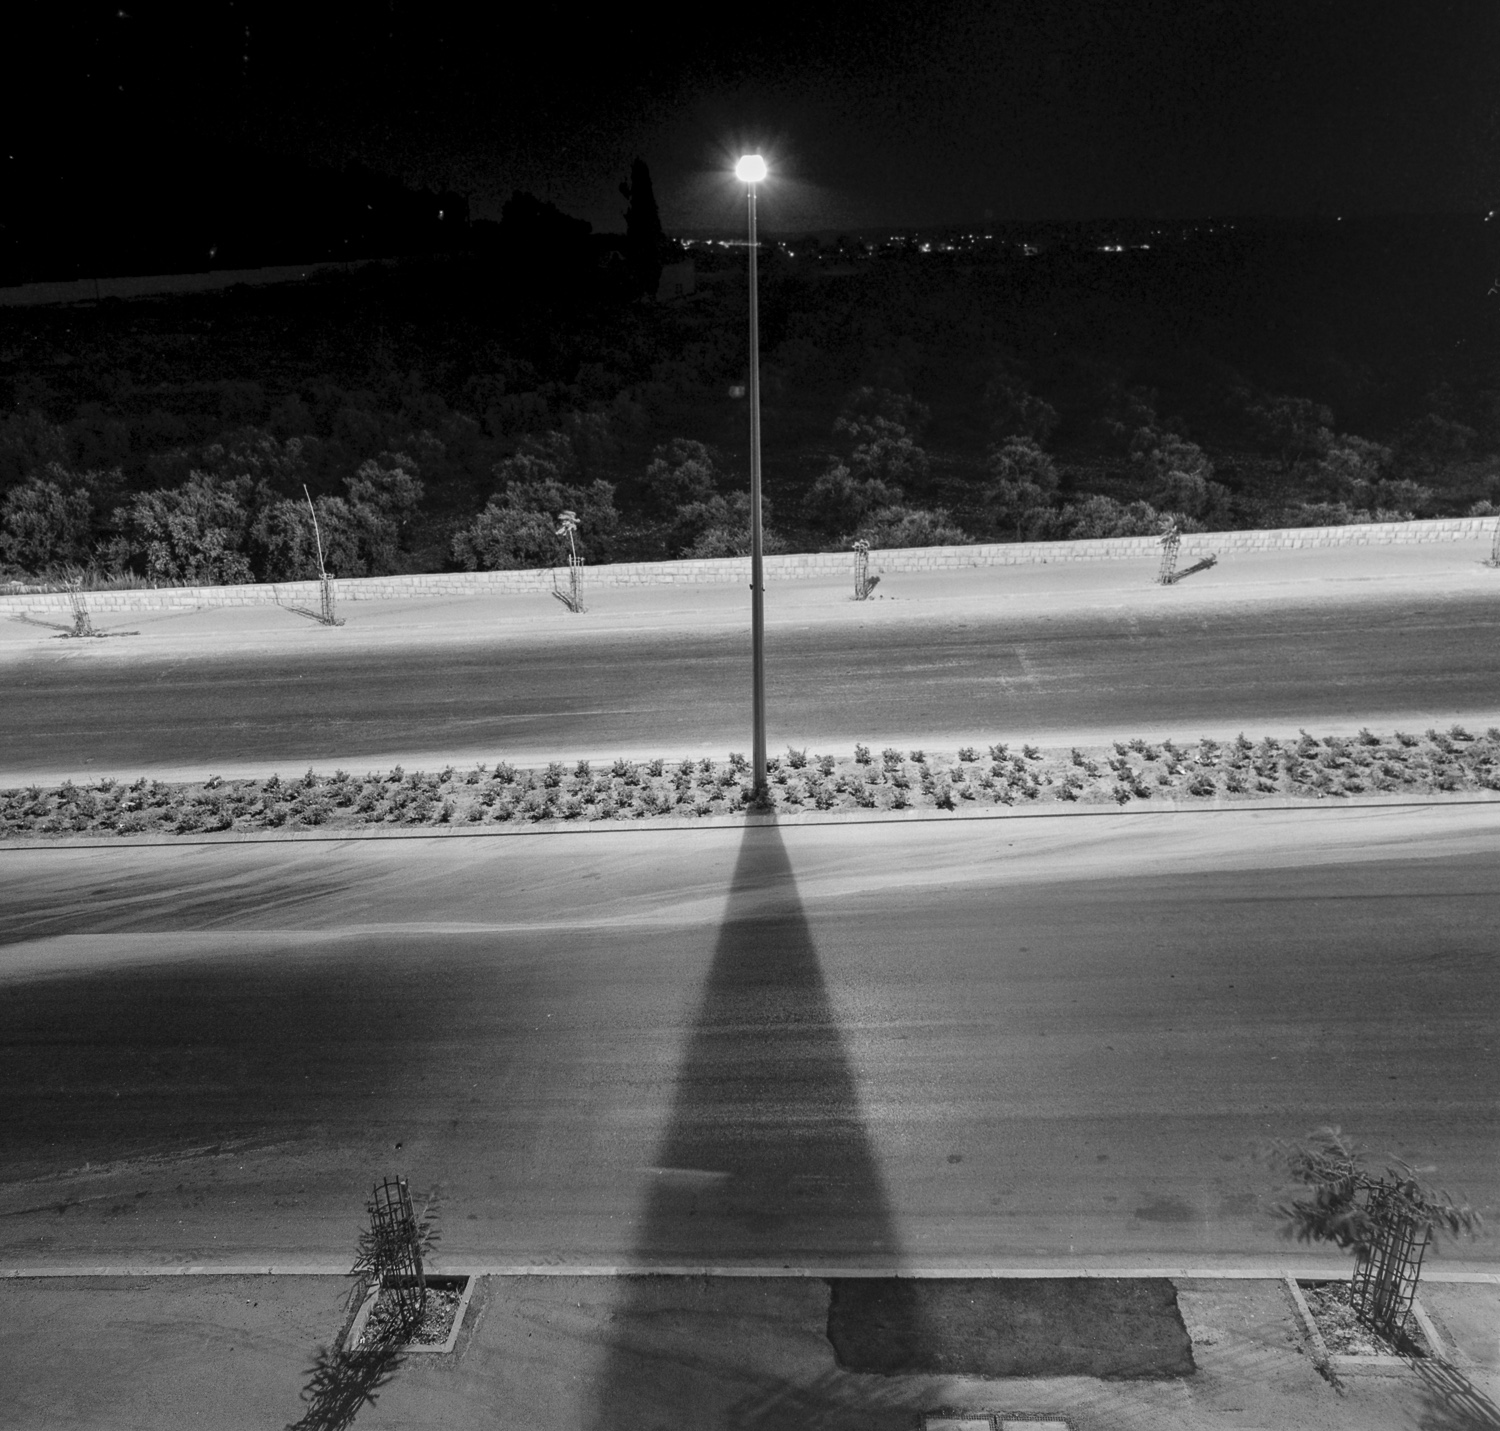 Streetlight and melting snow - Gilo, 1980